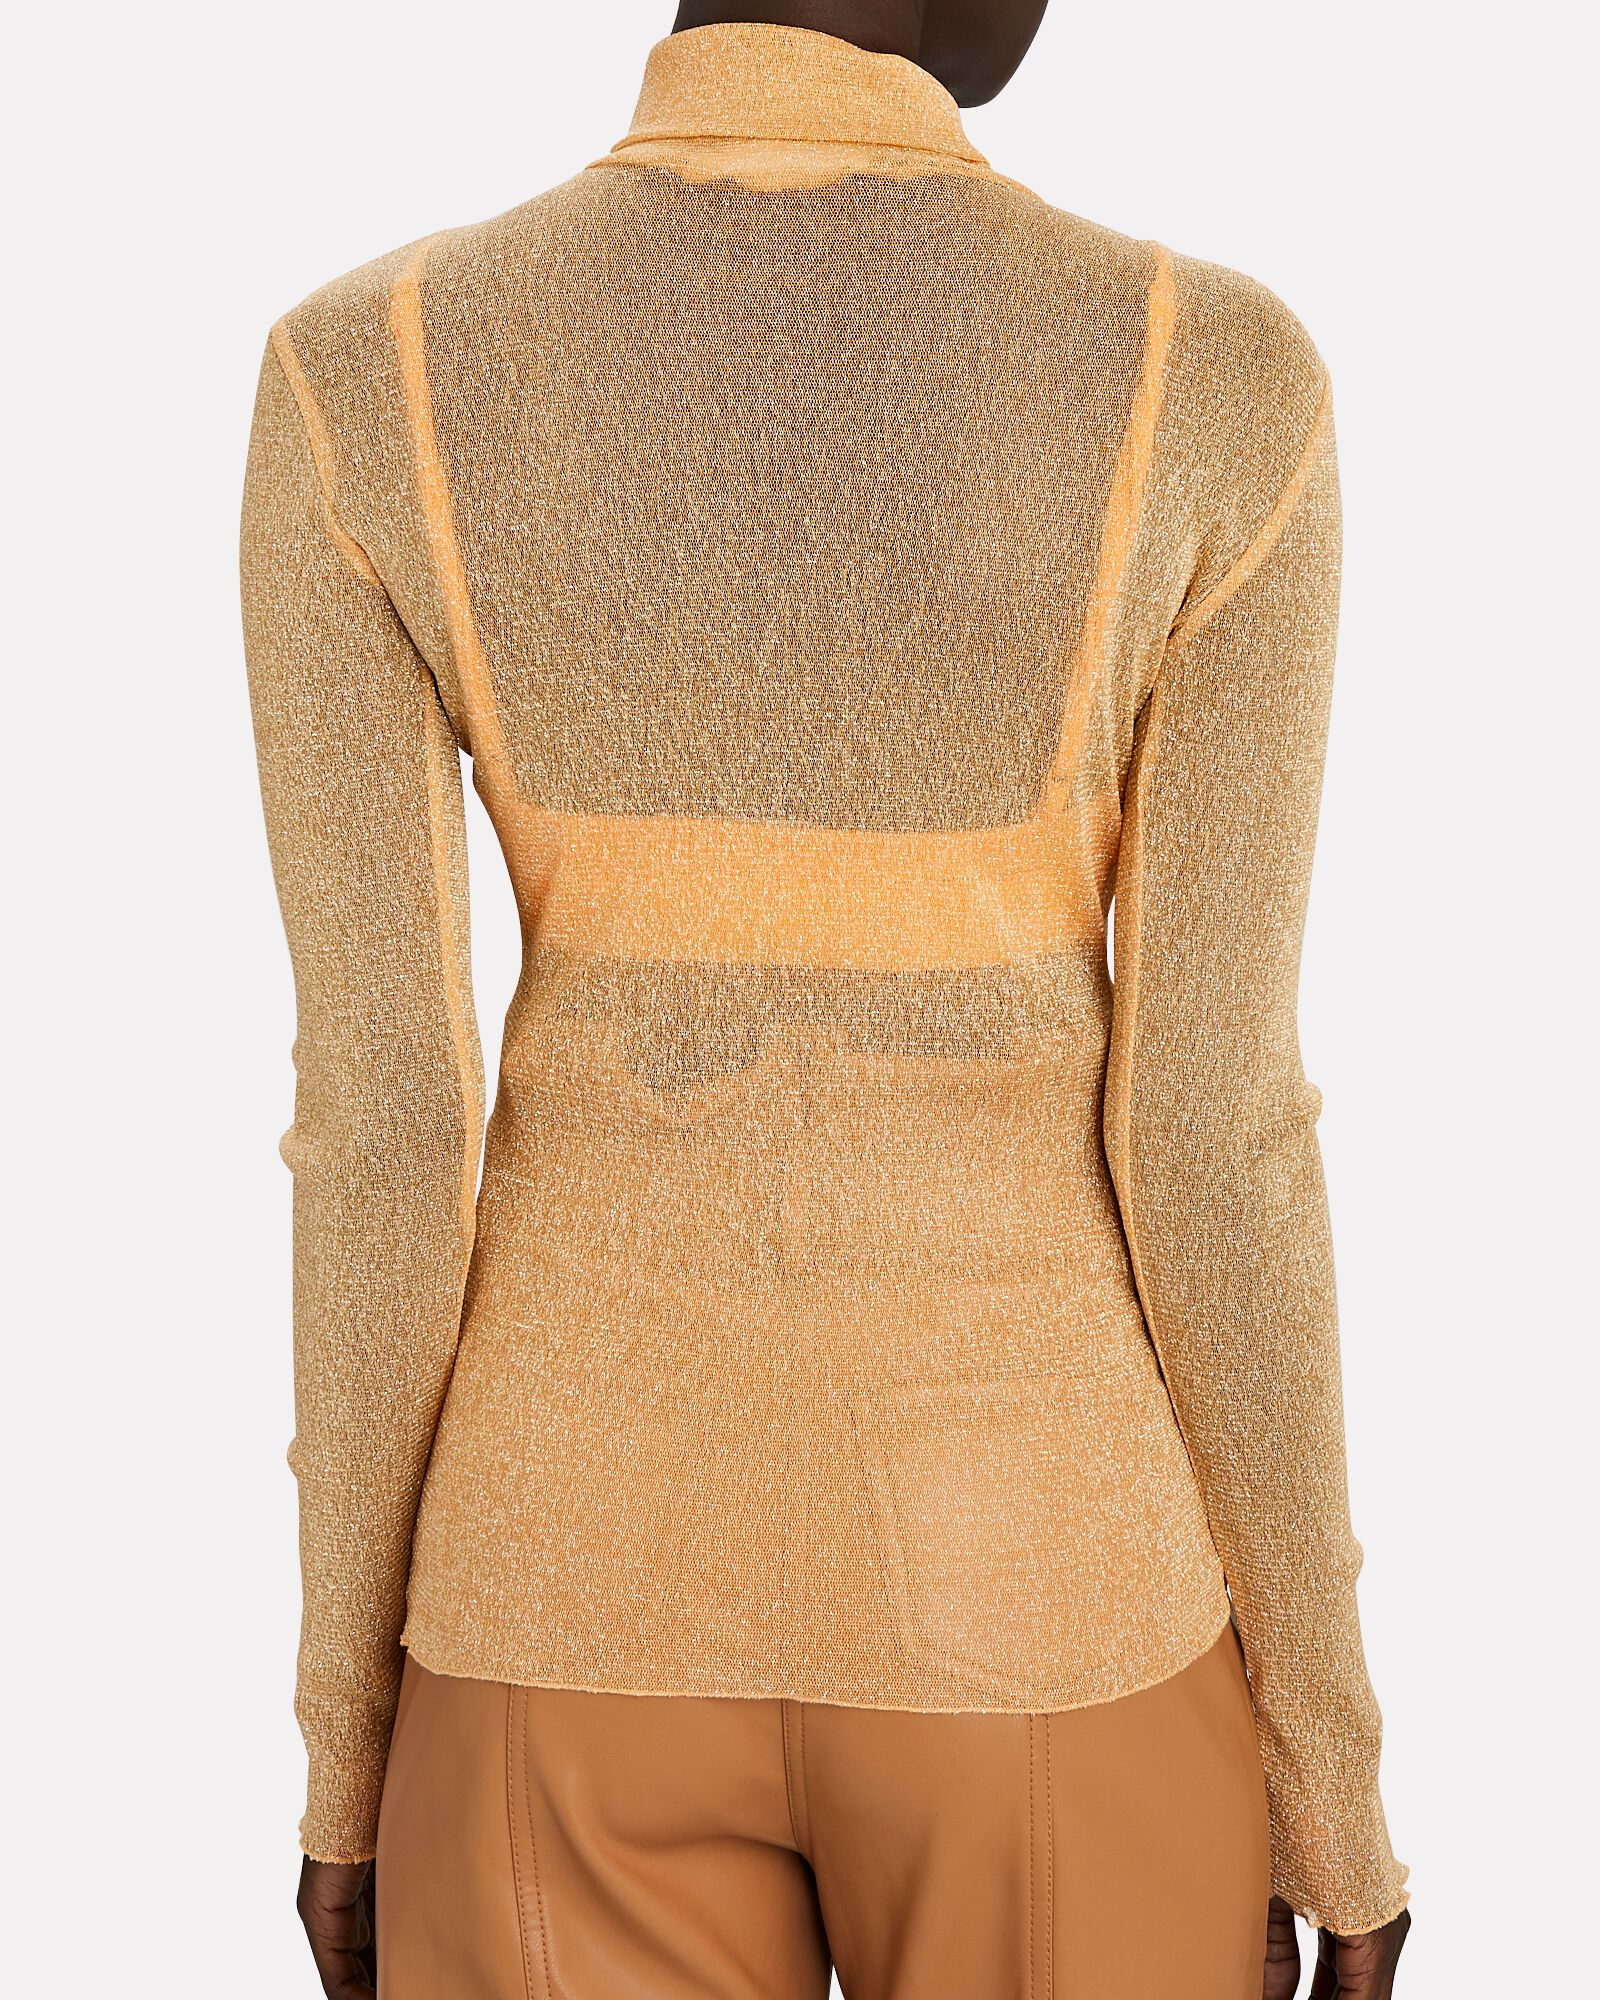 Charli Shimmer Organza Turtleneck Top, ORANGE, hi-res